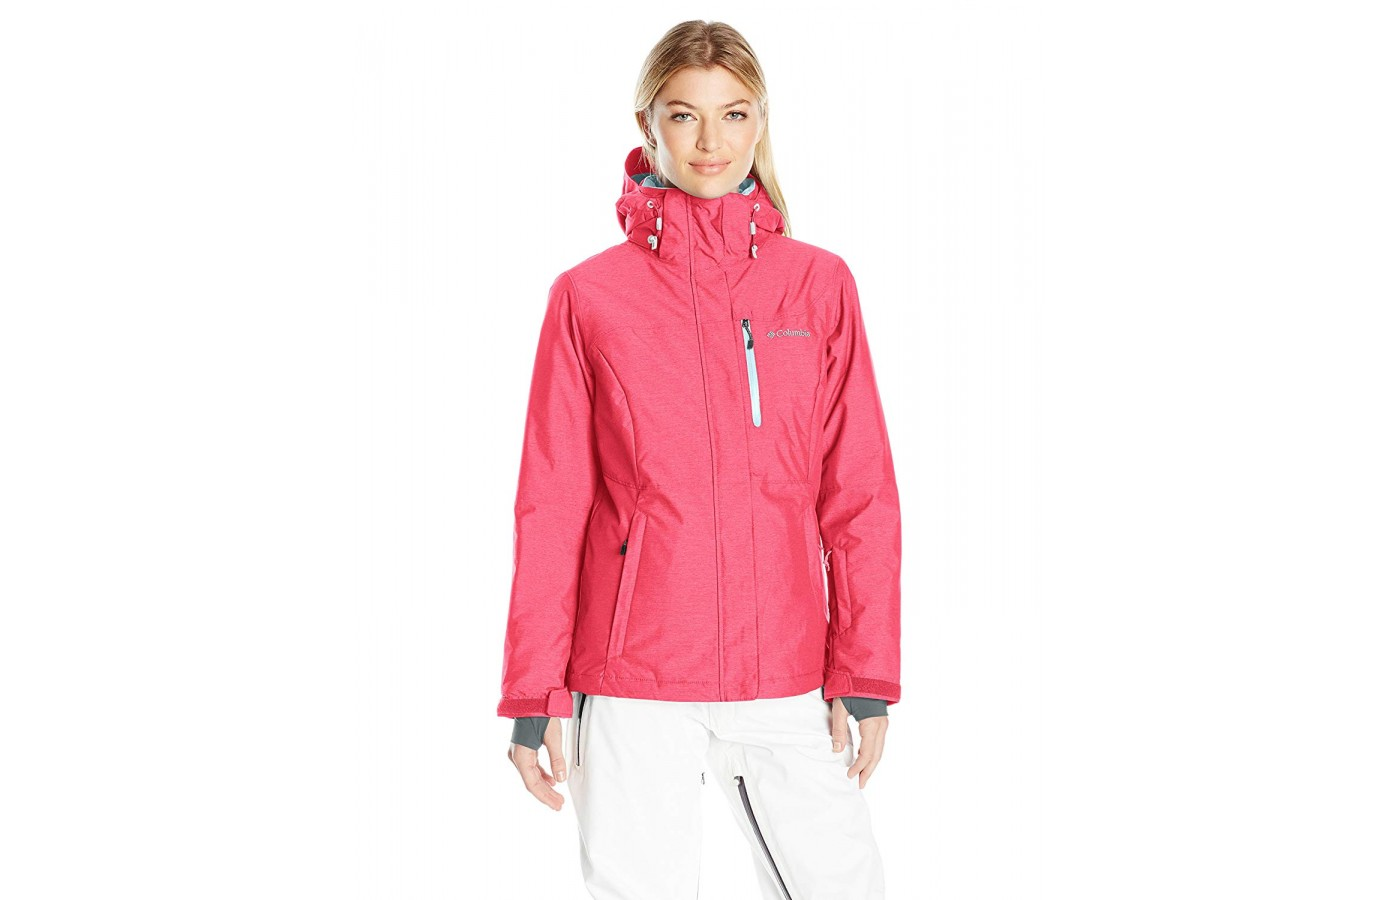 Many Consumers, especially women, agree the jacket has all the features one has come to expect of a ski jacket.